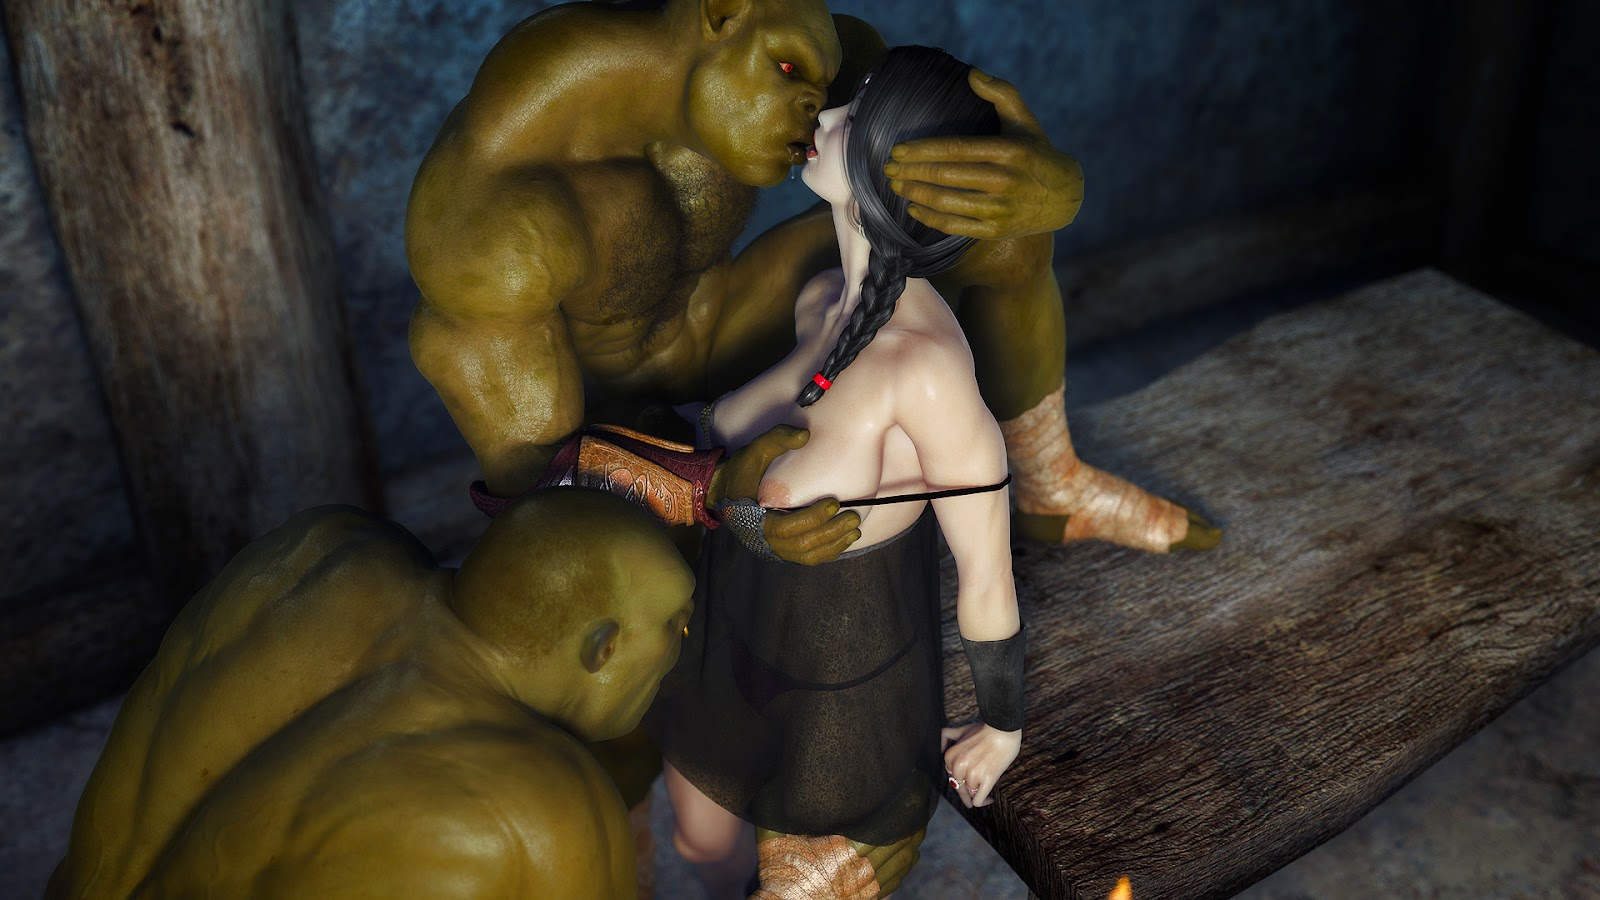 Secret of beauty orc ritual 7